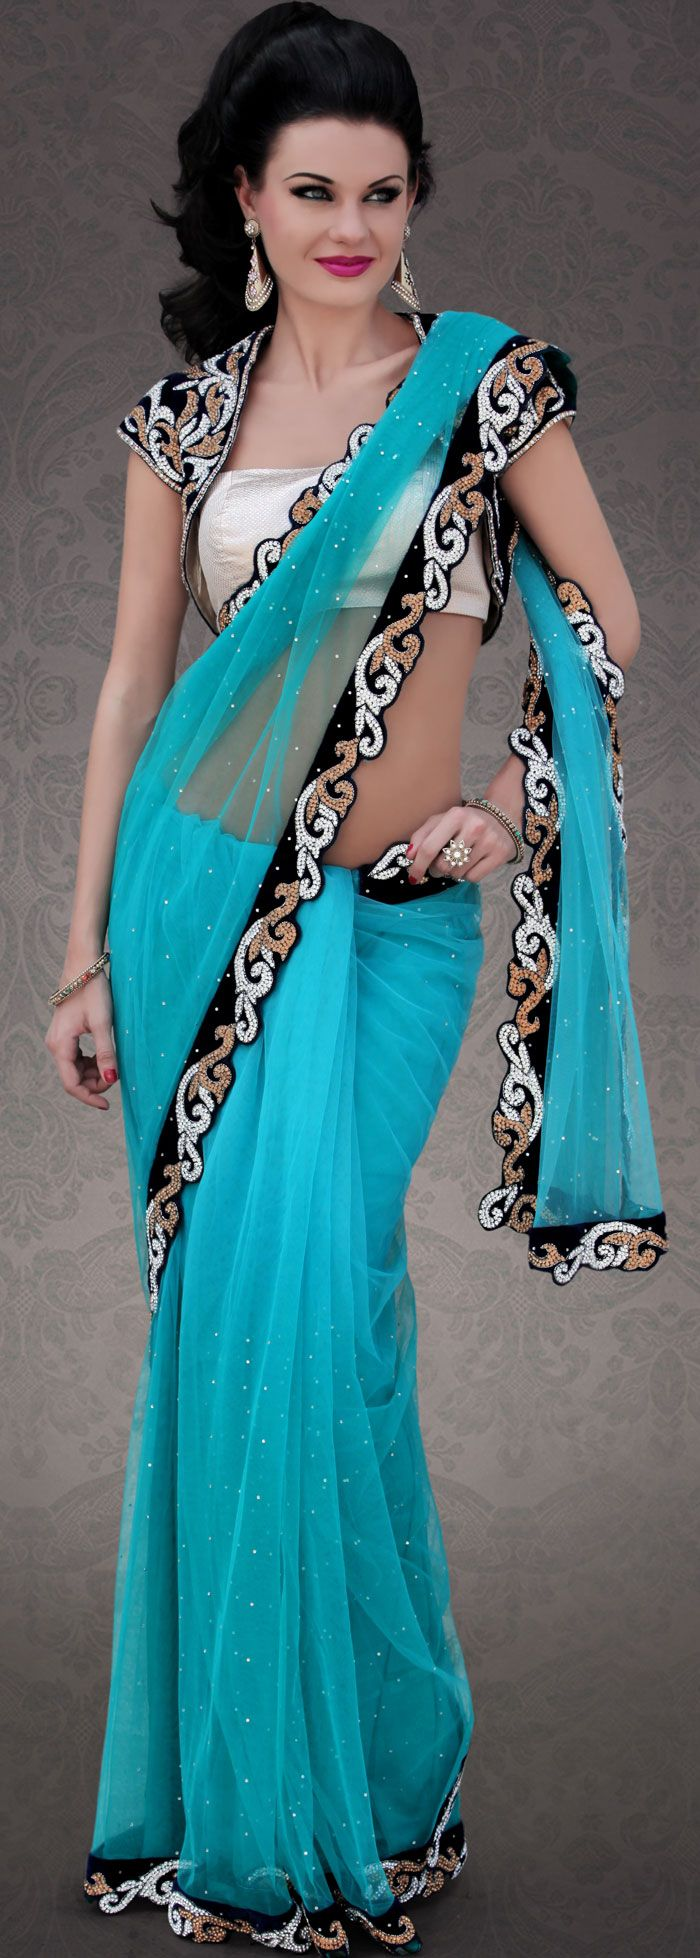 Latest Azure Blue Net #Saree #Design | @ $547.61 | Shop It Here ...